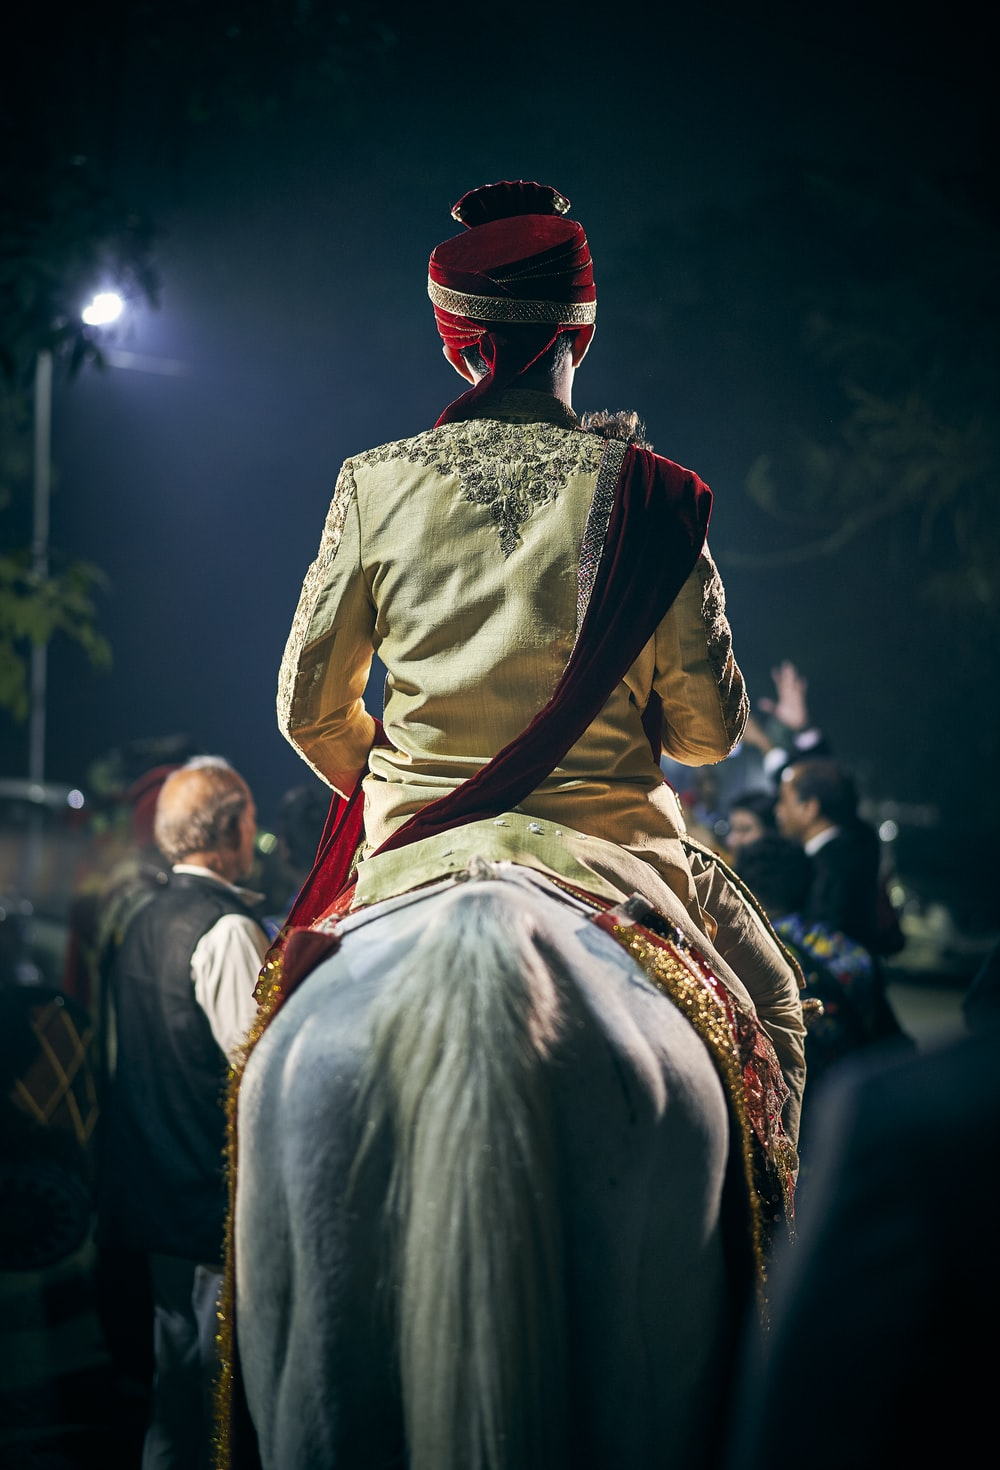 person sitting on horse near people during night